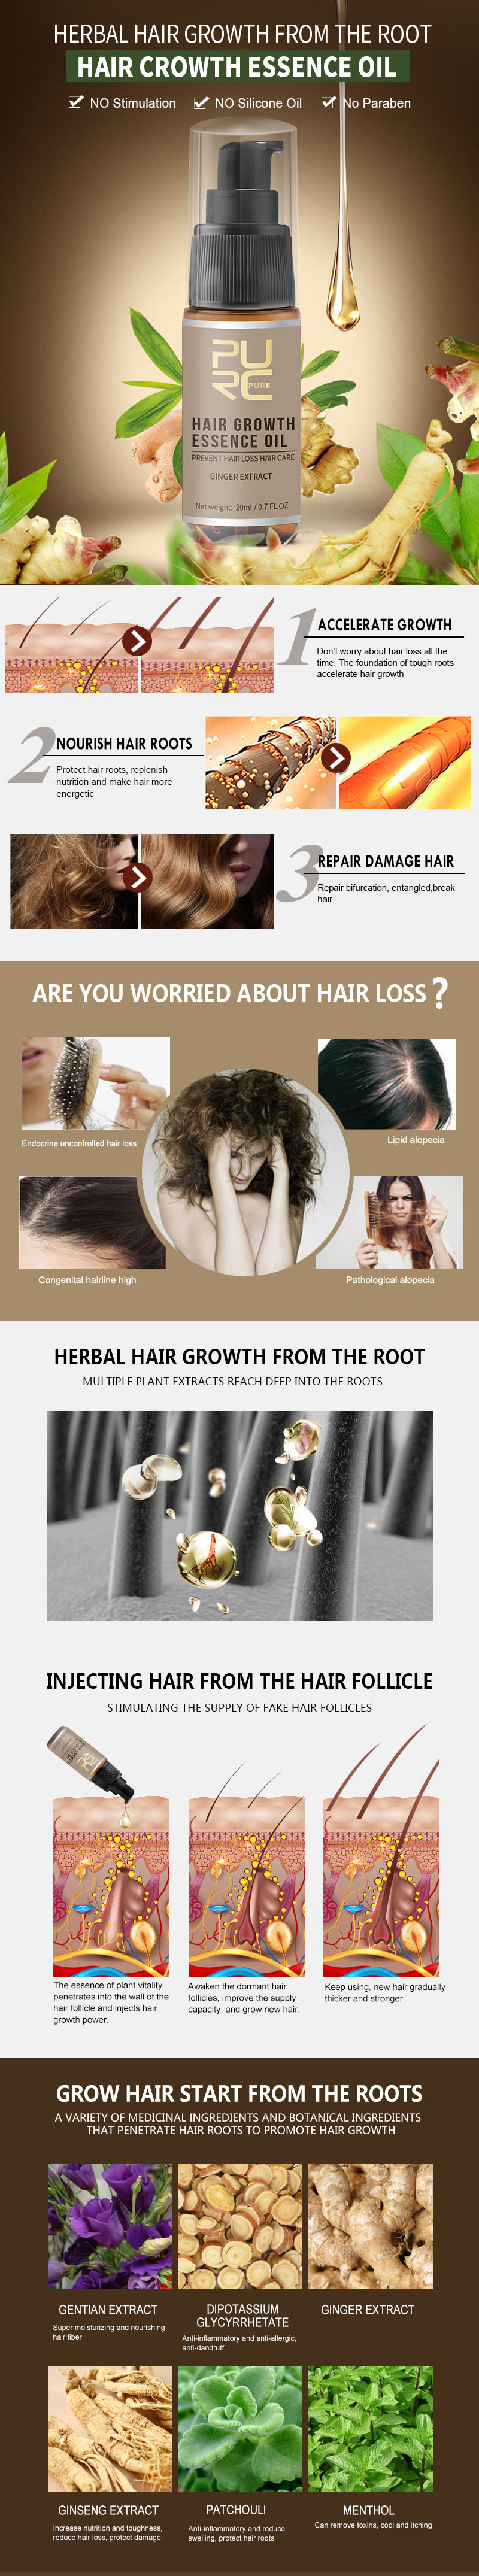 details of growth hair 1